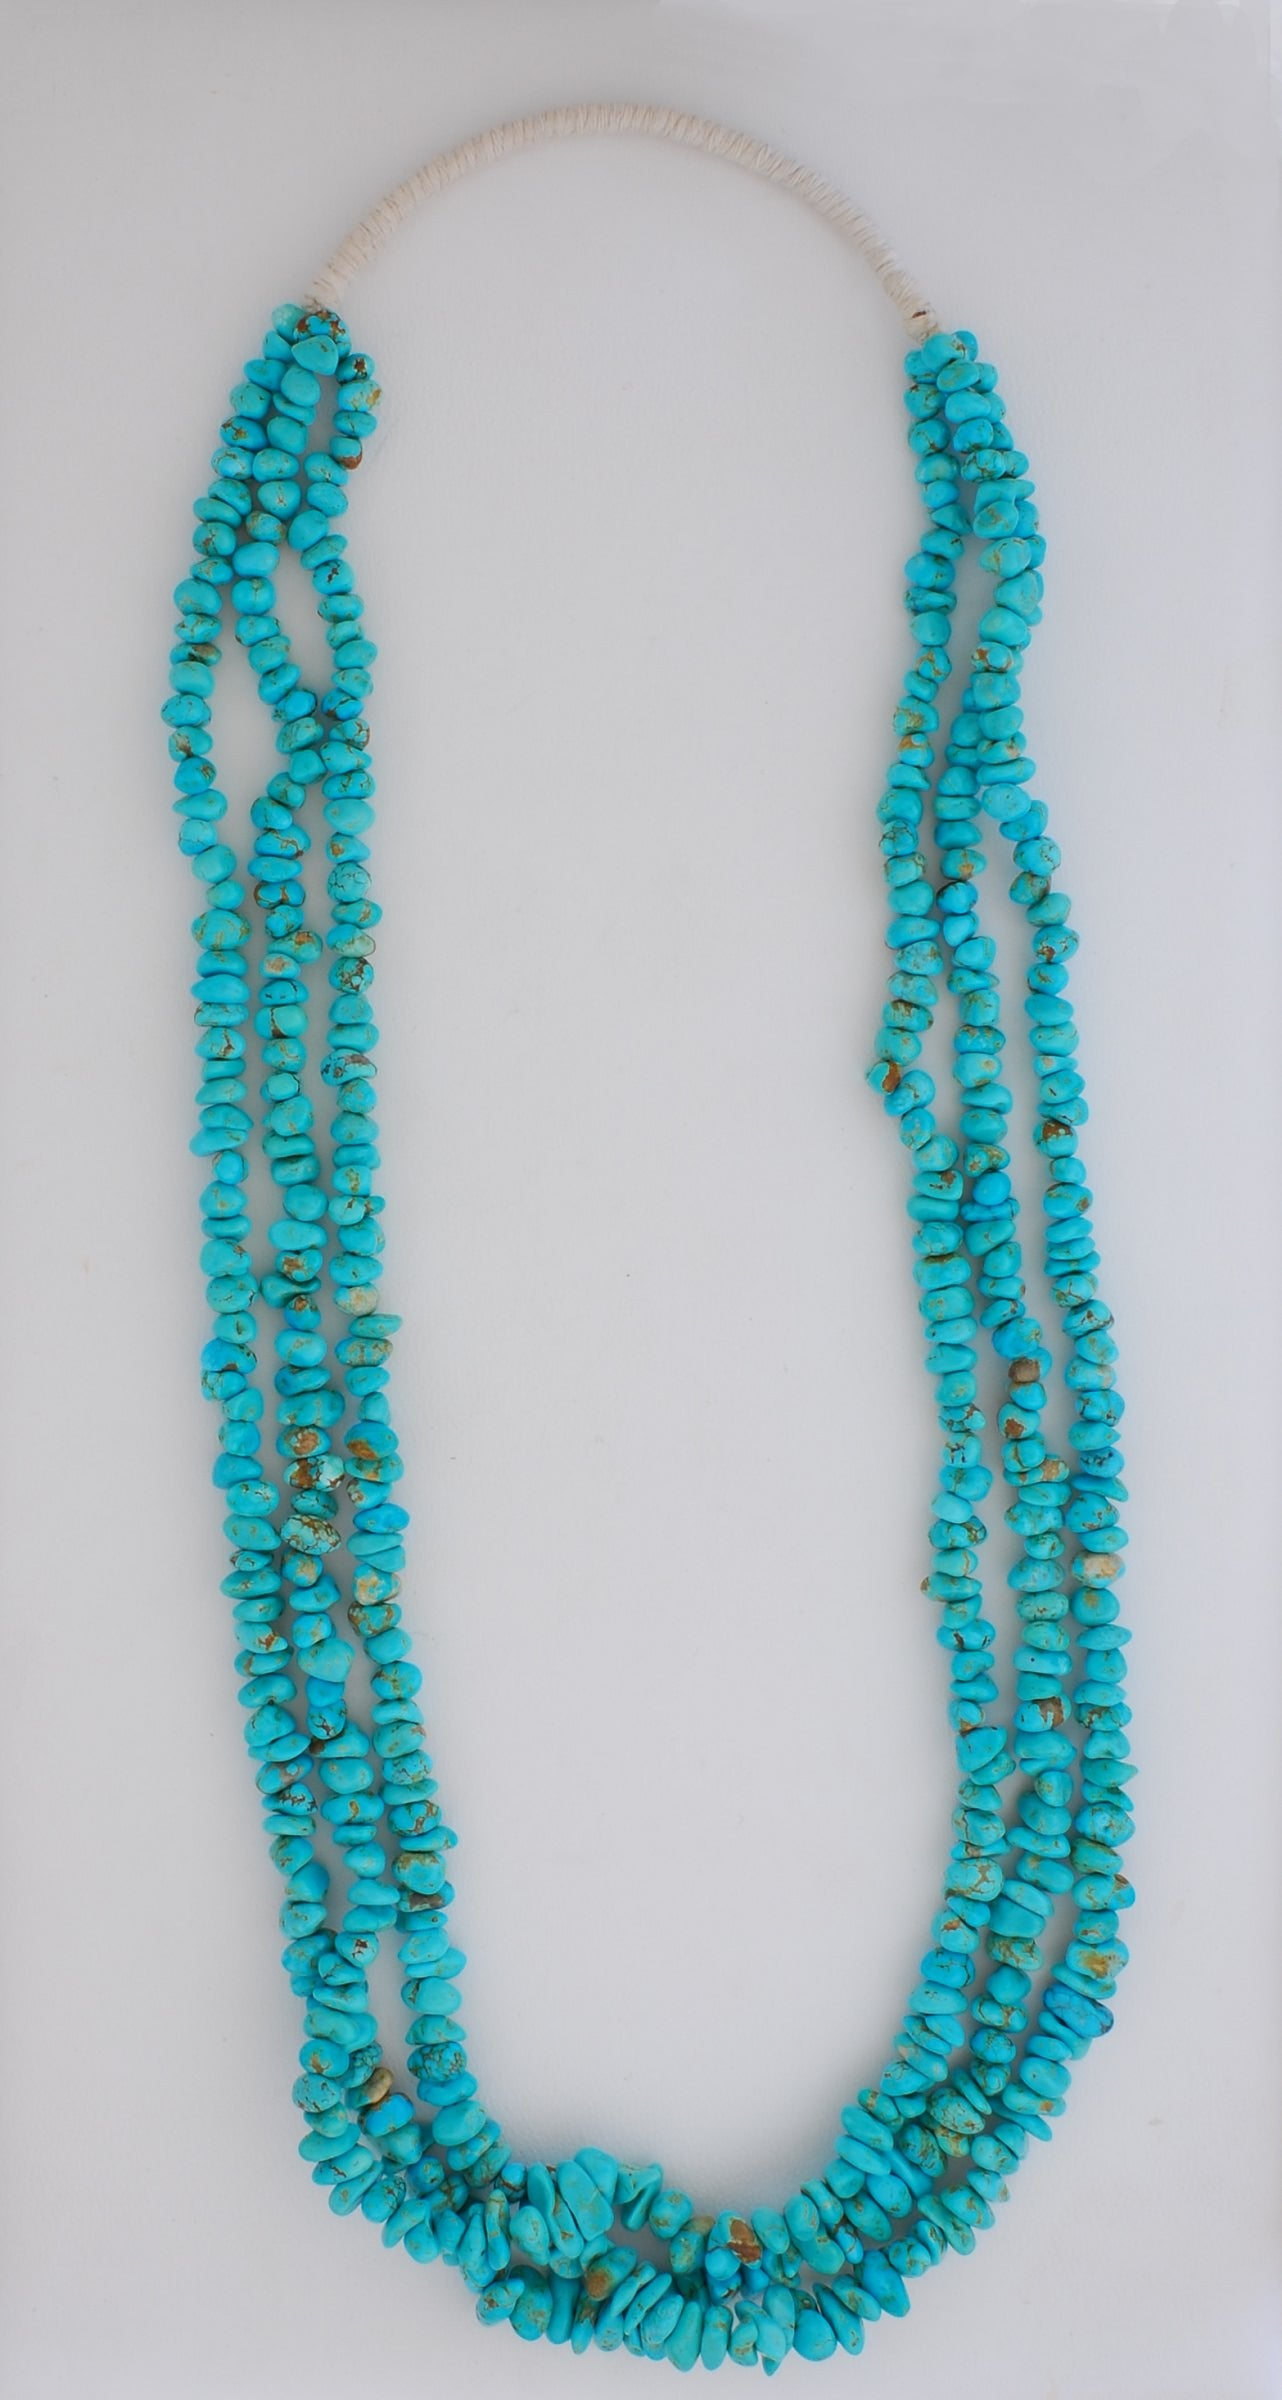 3-Strand Pueblo Wrap Turquoise Necklace by Calvin & Pilar Lovato